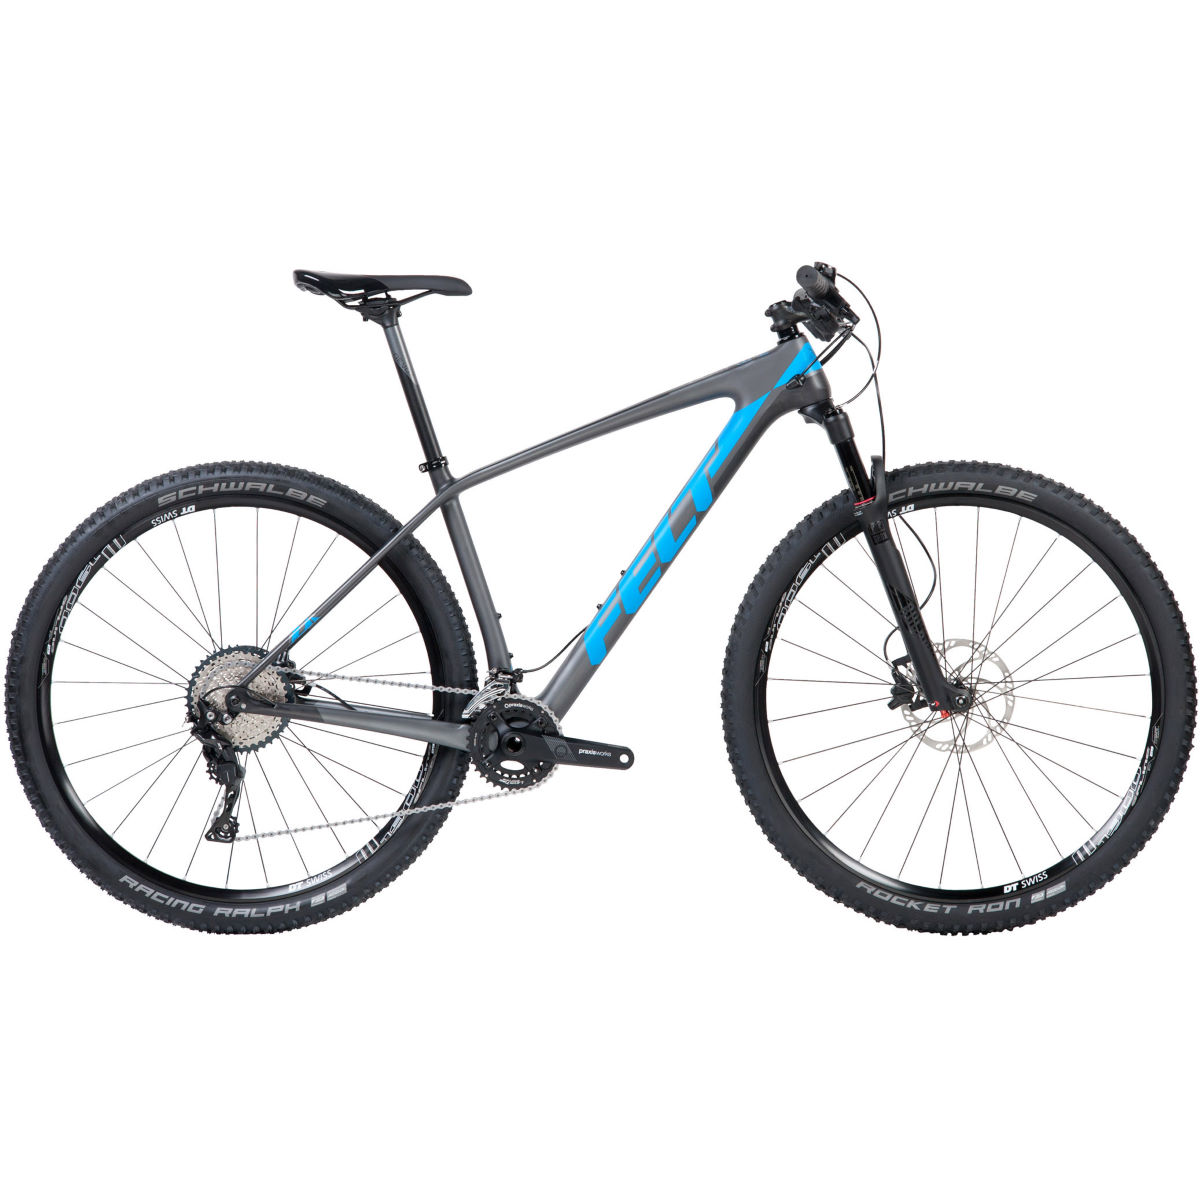 VTT semi-rigide Felt Doctrine 4 XC (carbone, 2018) - 22'' Stock Bike